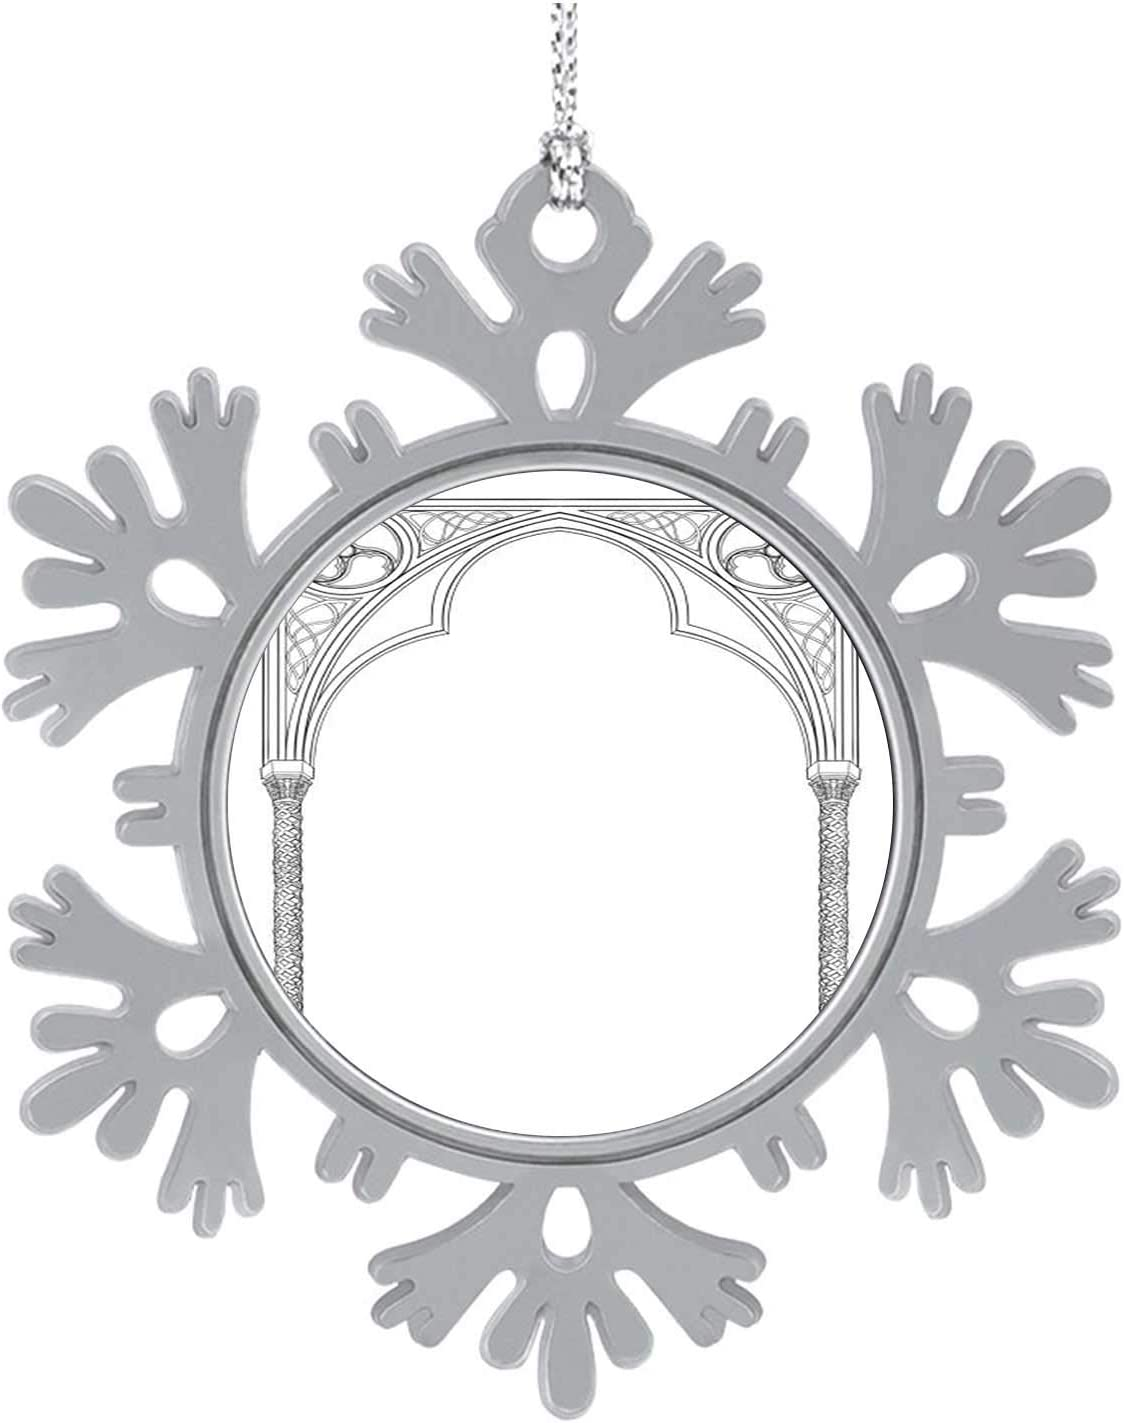 C COABALLA Medieval Manuscript Style Rectangular Frame.Gothic Pointed Arch.- - Russia,Silver Snowflakes & Snowflakes Hanging New Year Party Home Decoration Architecture 5PCS